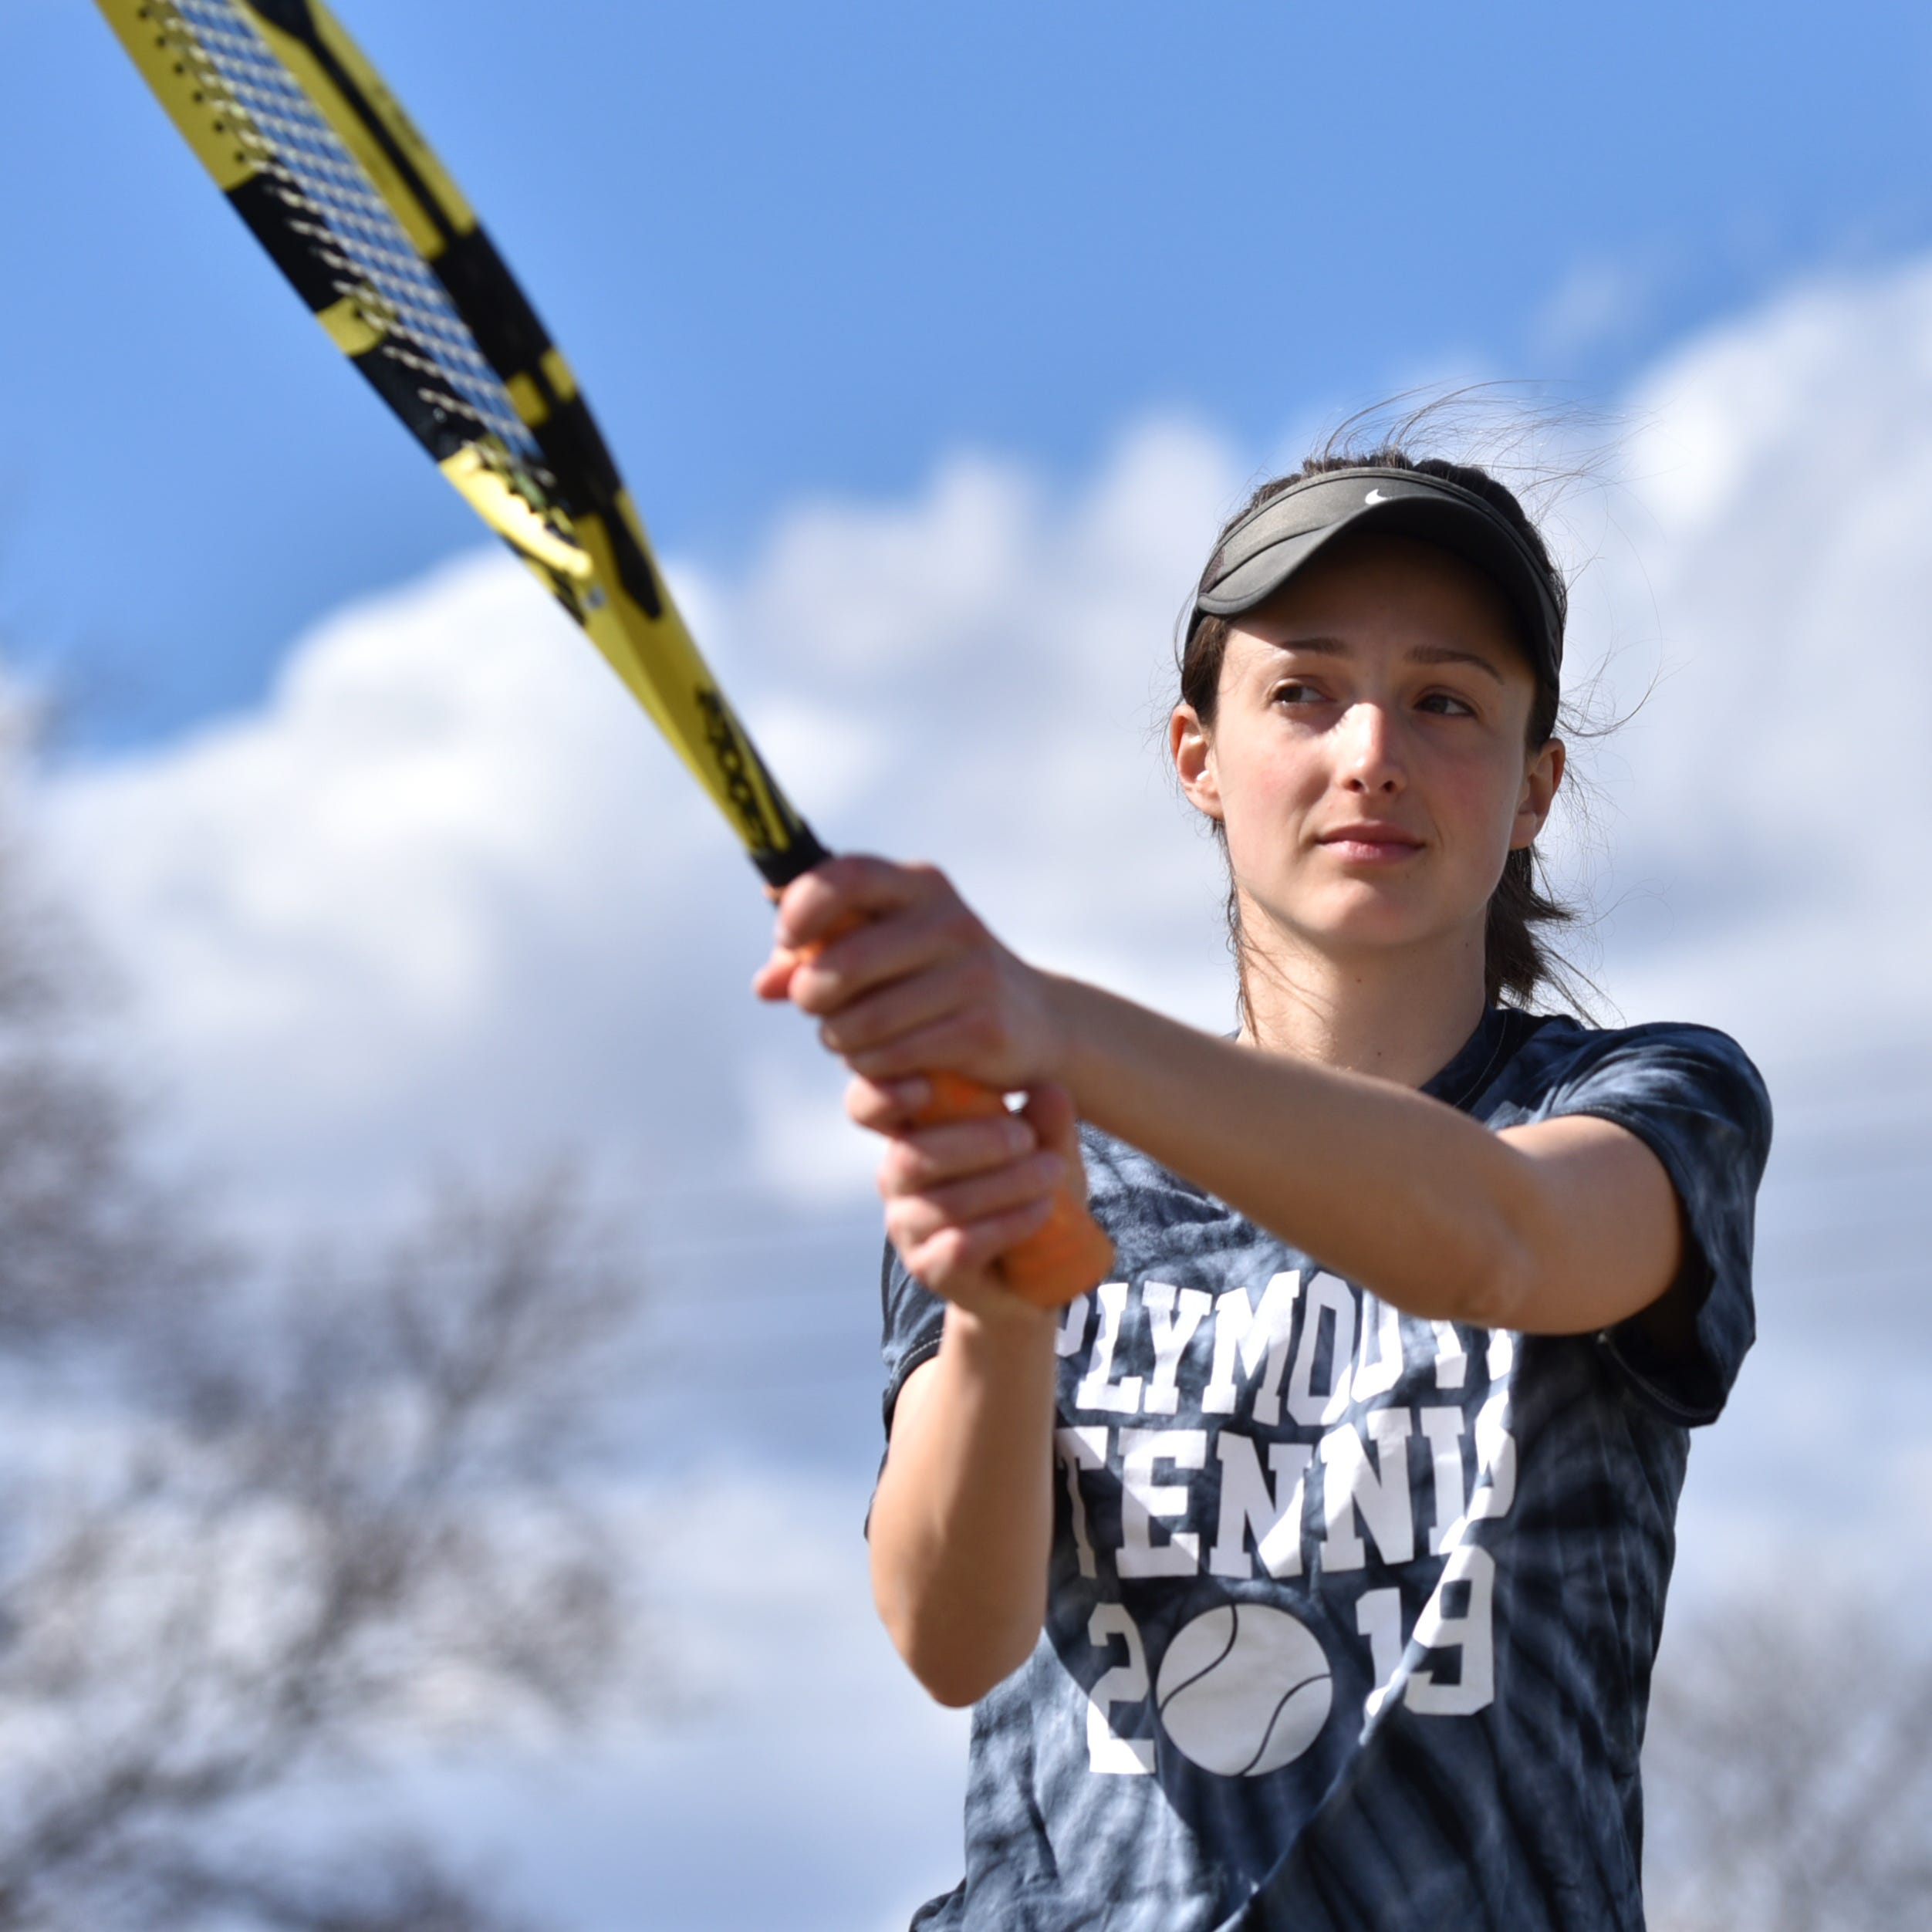 Led by top ranked Jessica Braun, Plymouth girls tennis has high hopes for this season